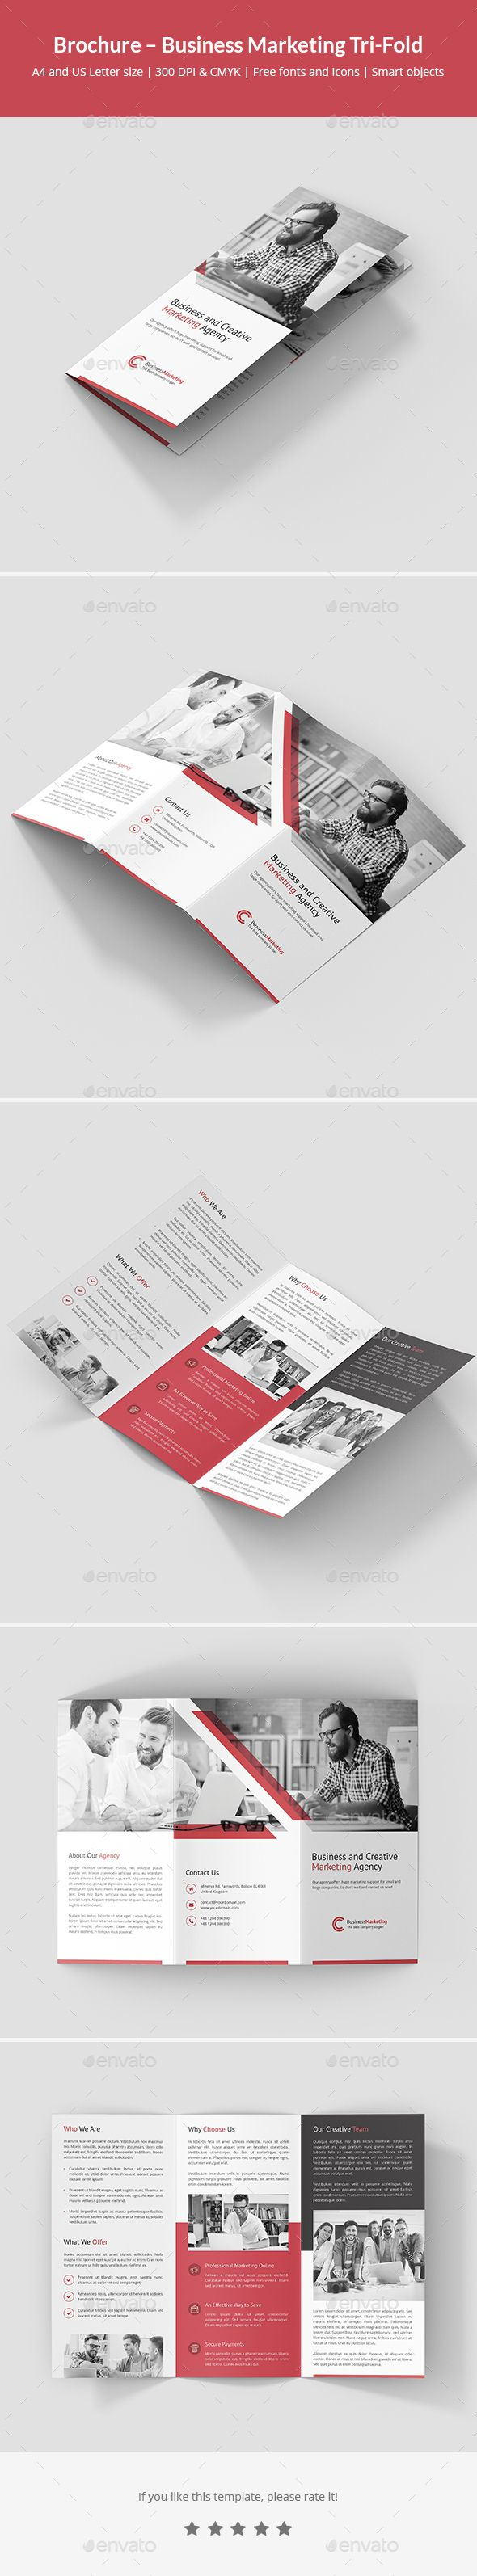 Brochure  Business Marketing TriFold  Business Marketing Tri